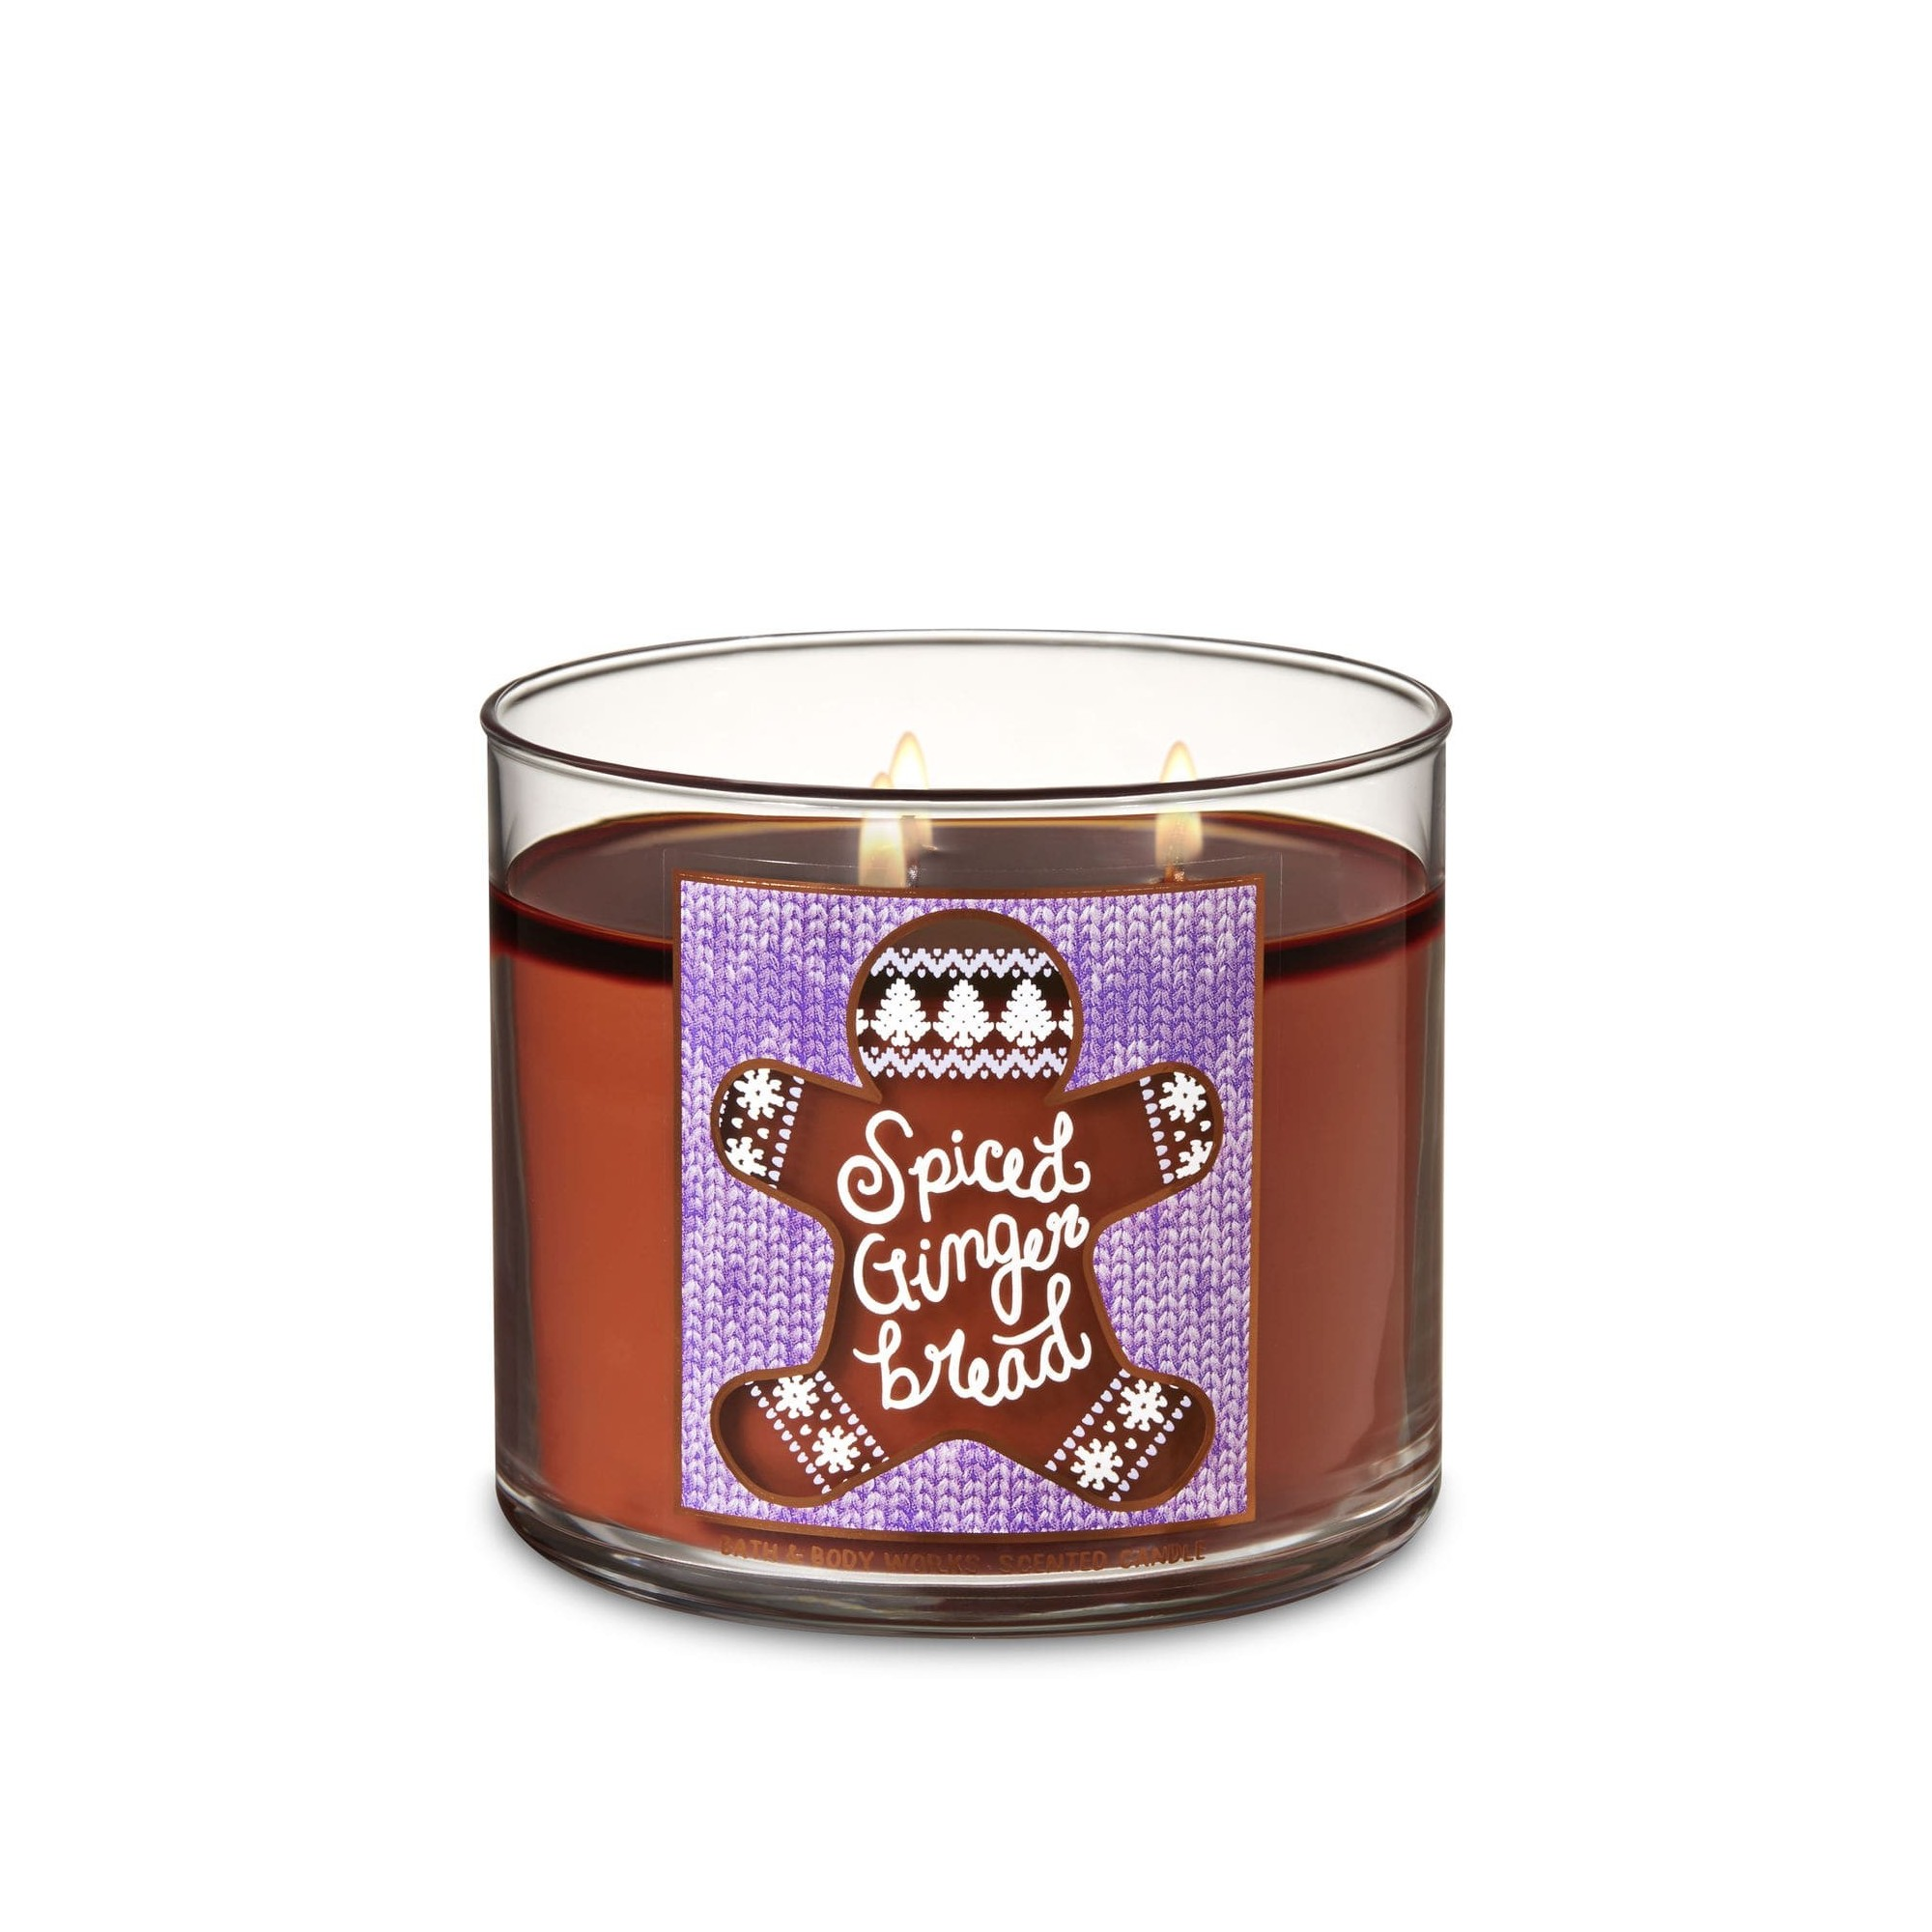 Bath & Body Works Spiced Gingerbread 3 Wick Scented Candle